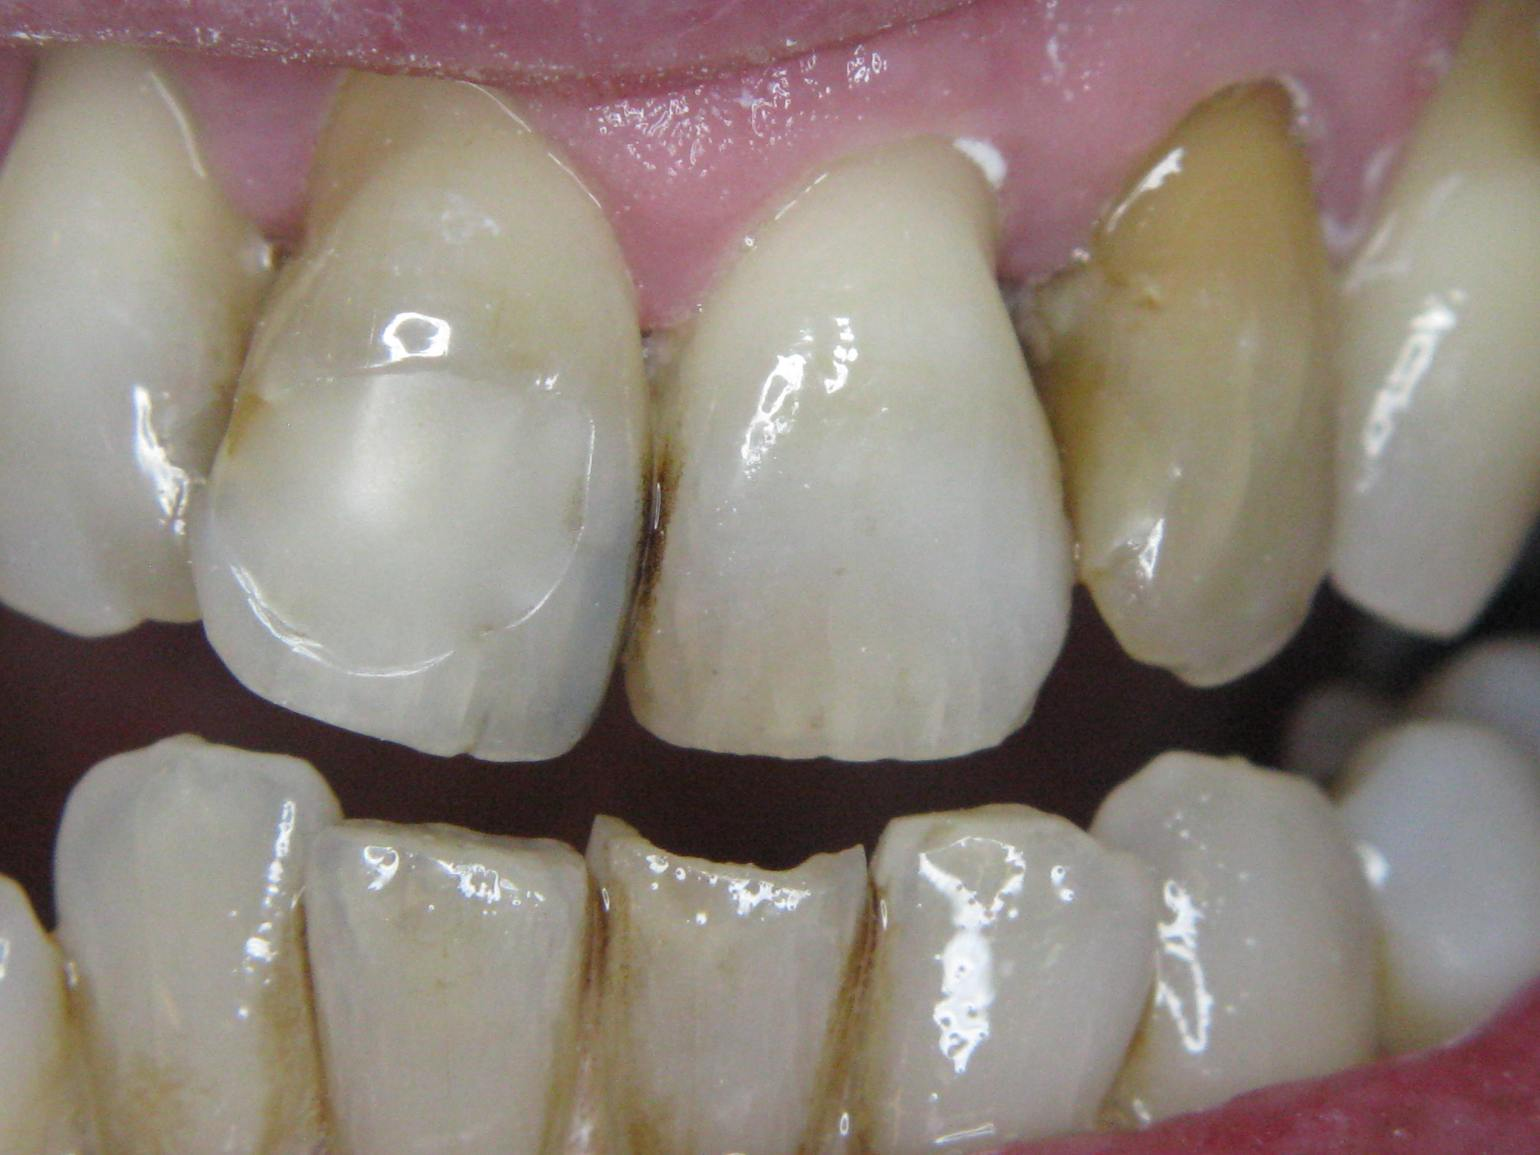 Incisors after sandblasting